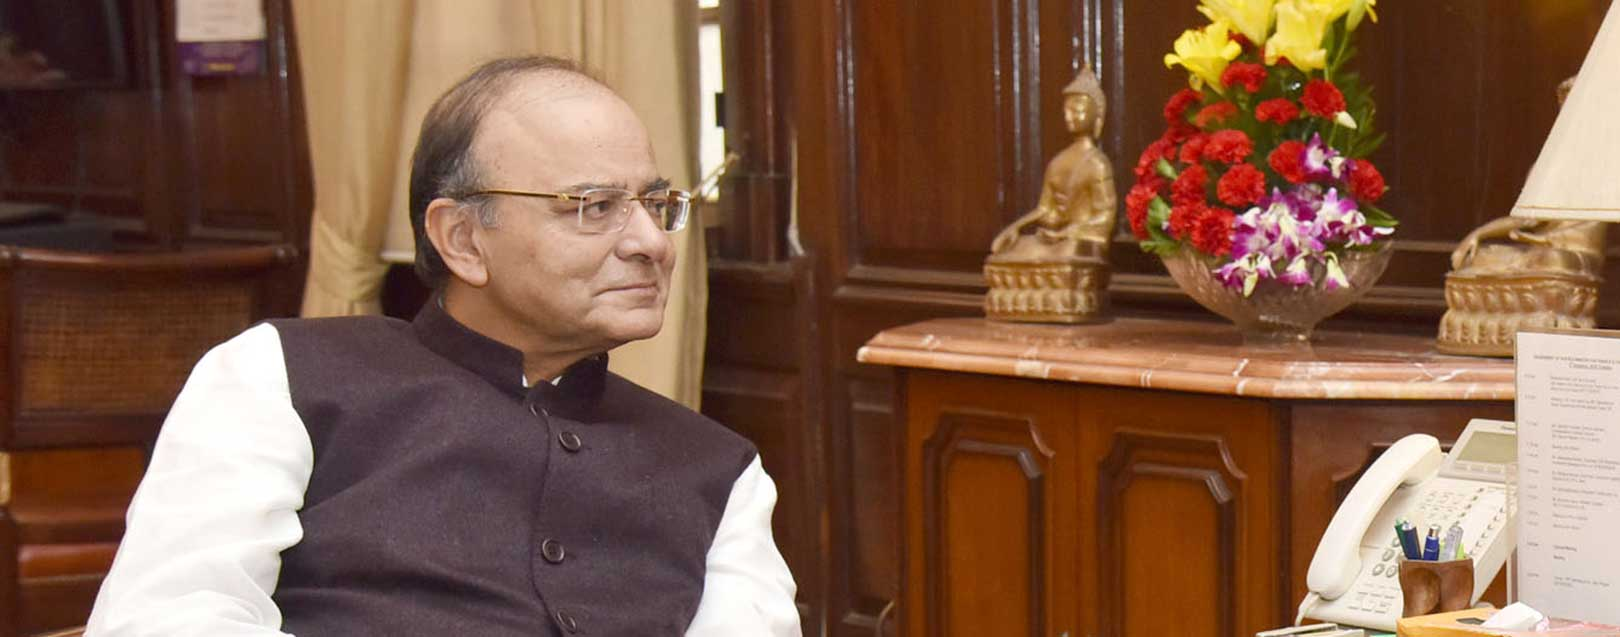 'Make in Odisha' conclave to host Arun Jaitley, key industry leaders